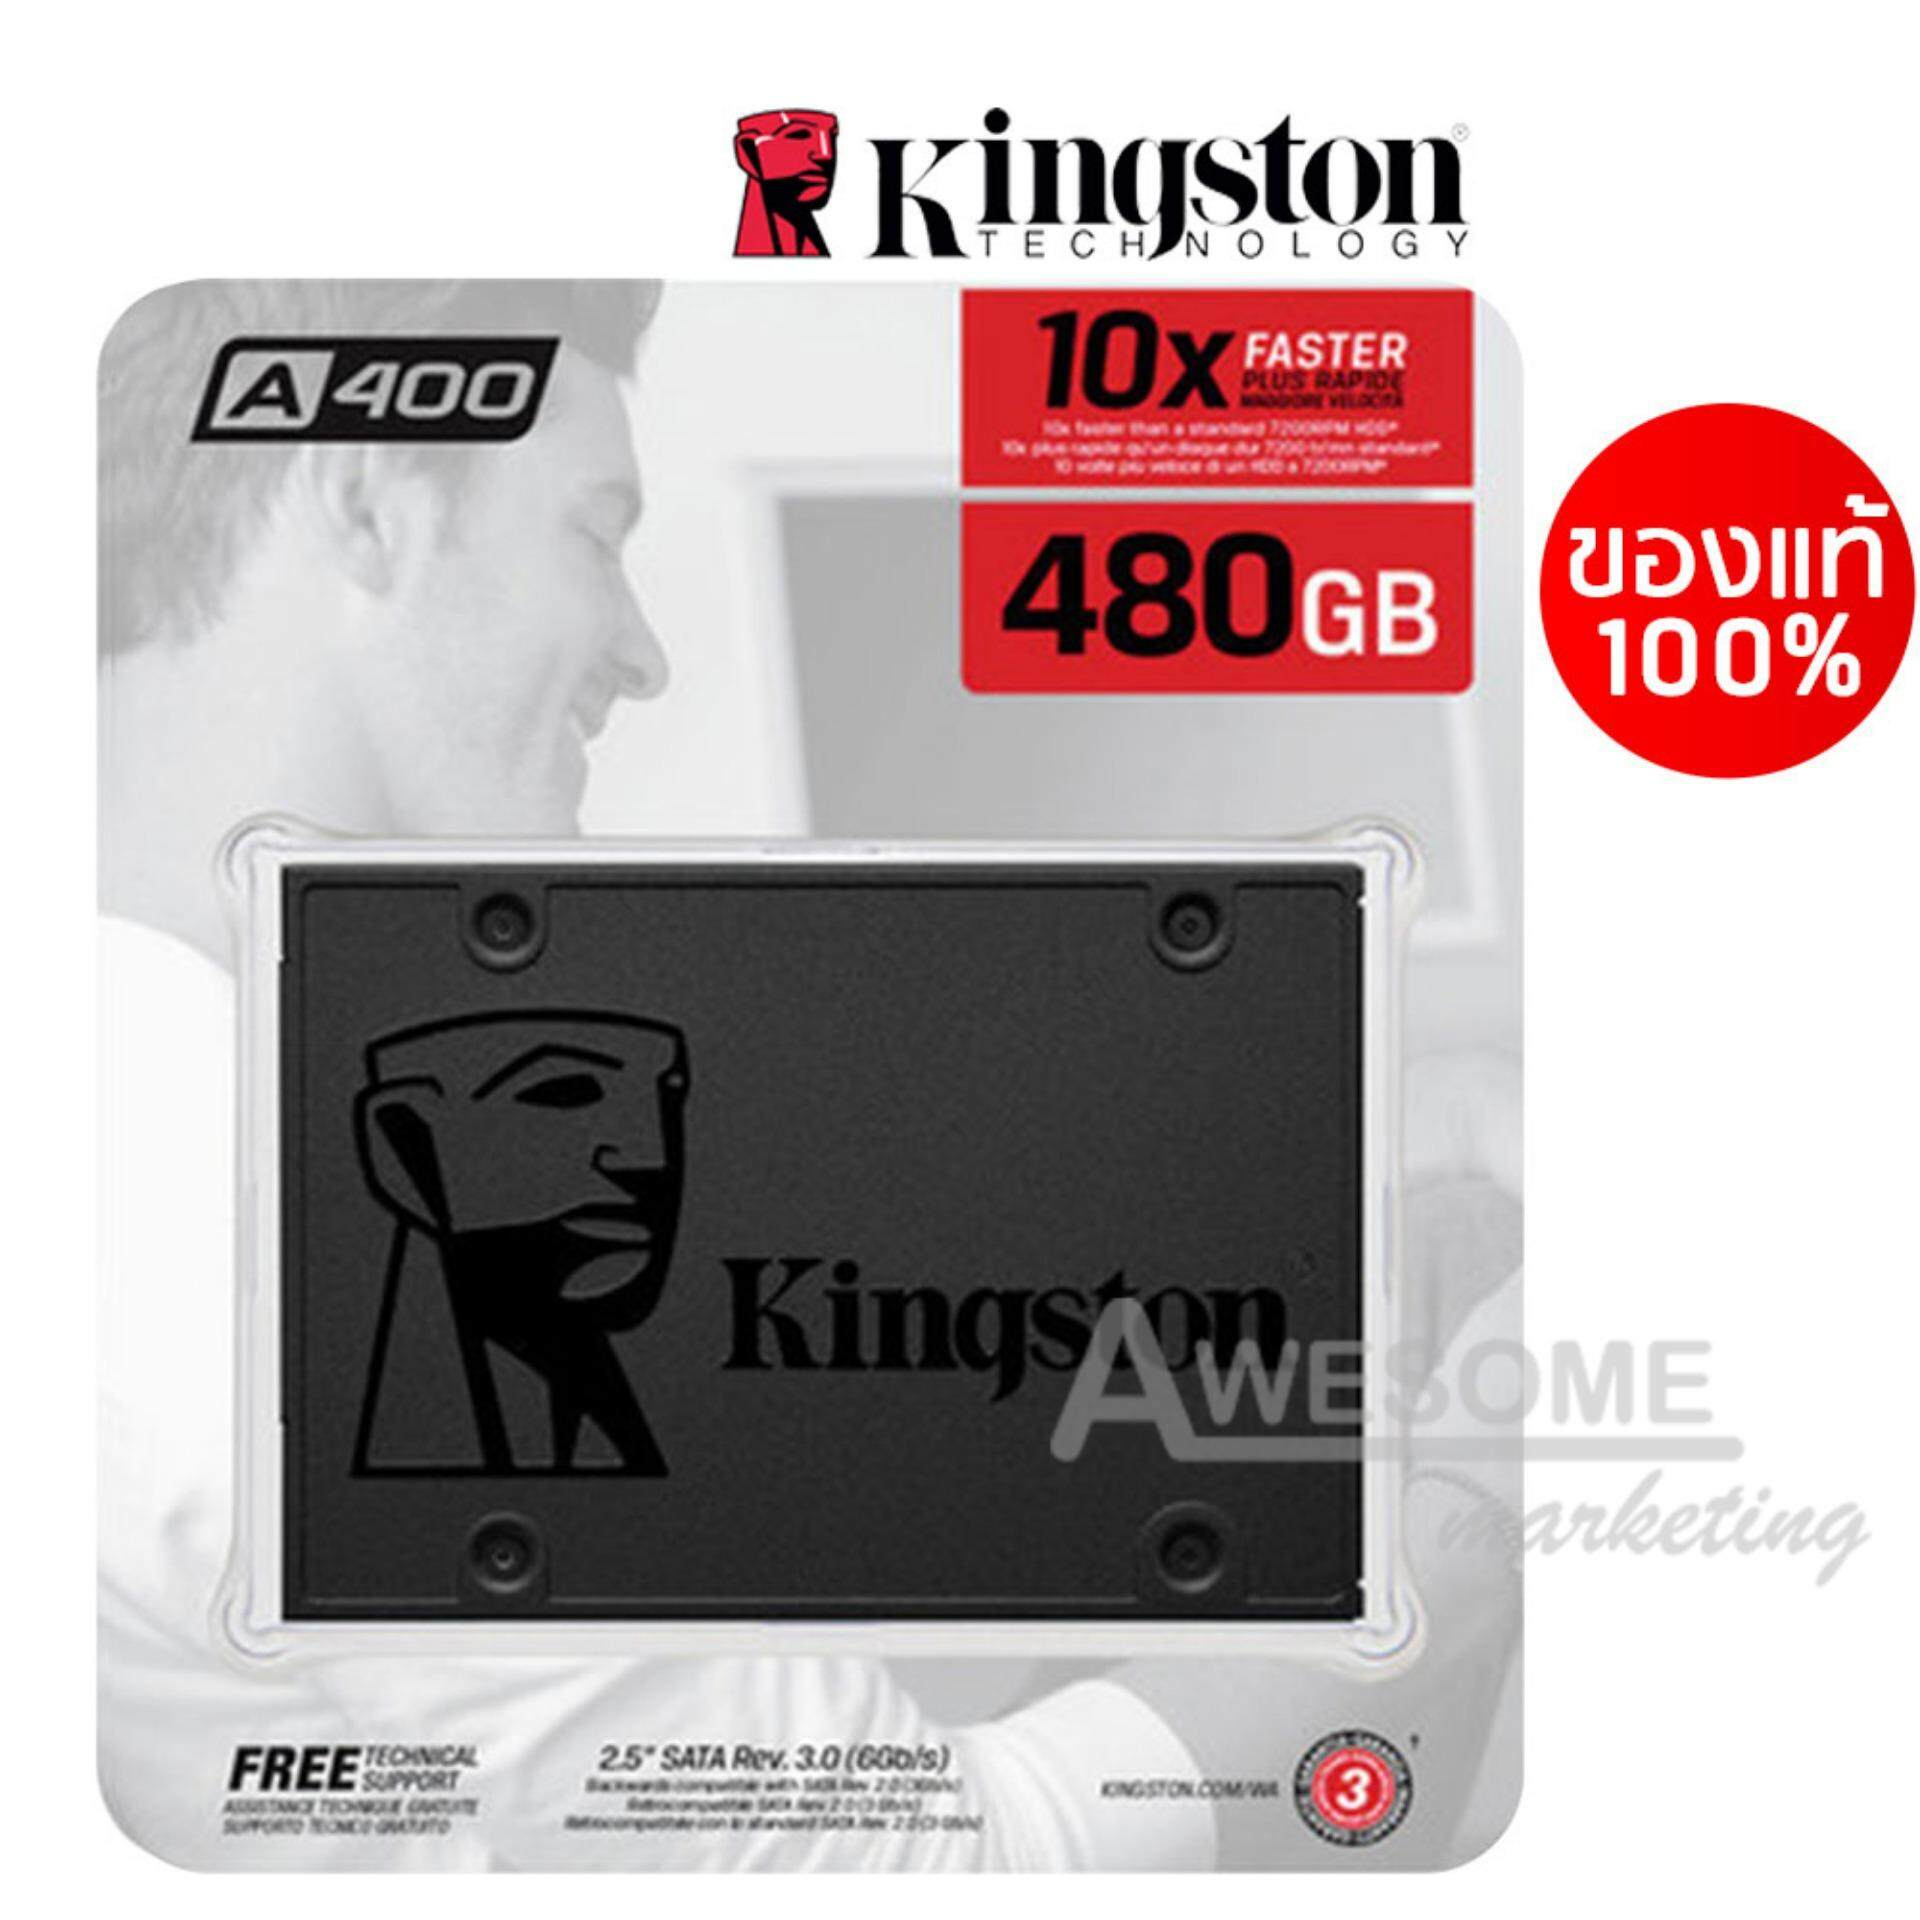 Kingston solid state hard drive รุ่น A400 ความเร็ว r/500 w/450 MB/s ความจุ 480 GB (SA400S37/480G)